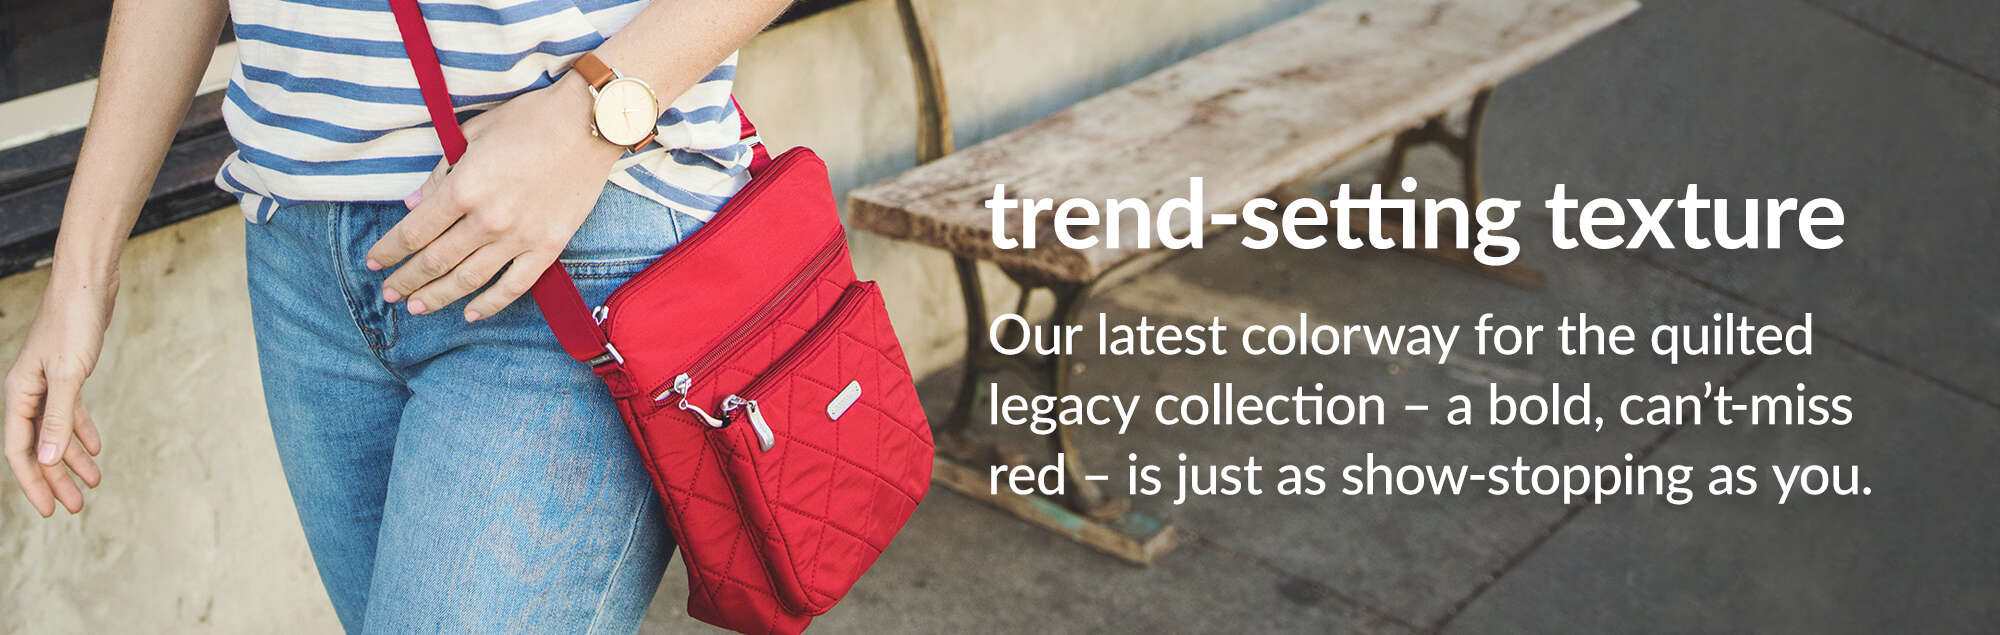 'Trend-setting texture. Our latest colorway for the quilted legacy collection -  a bold